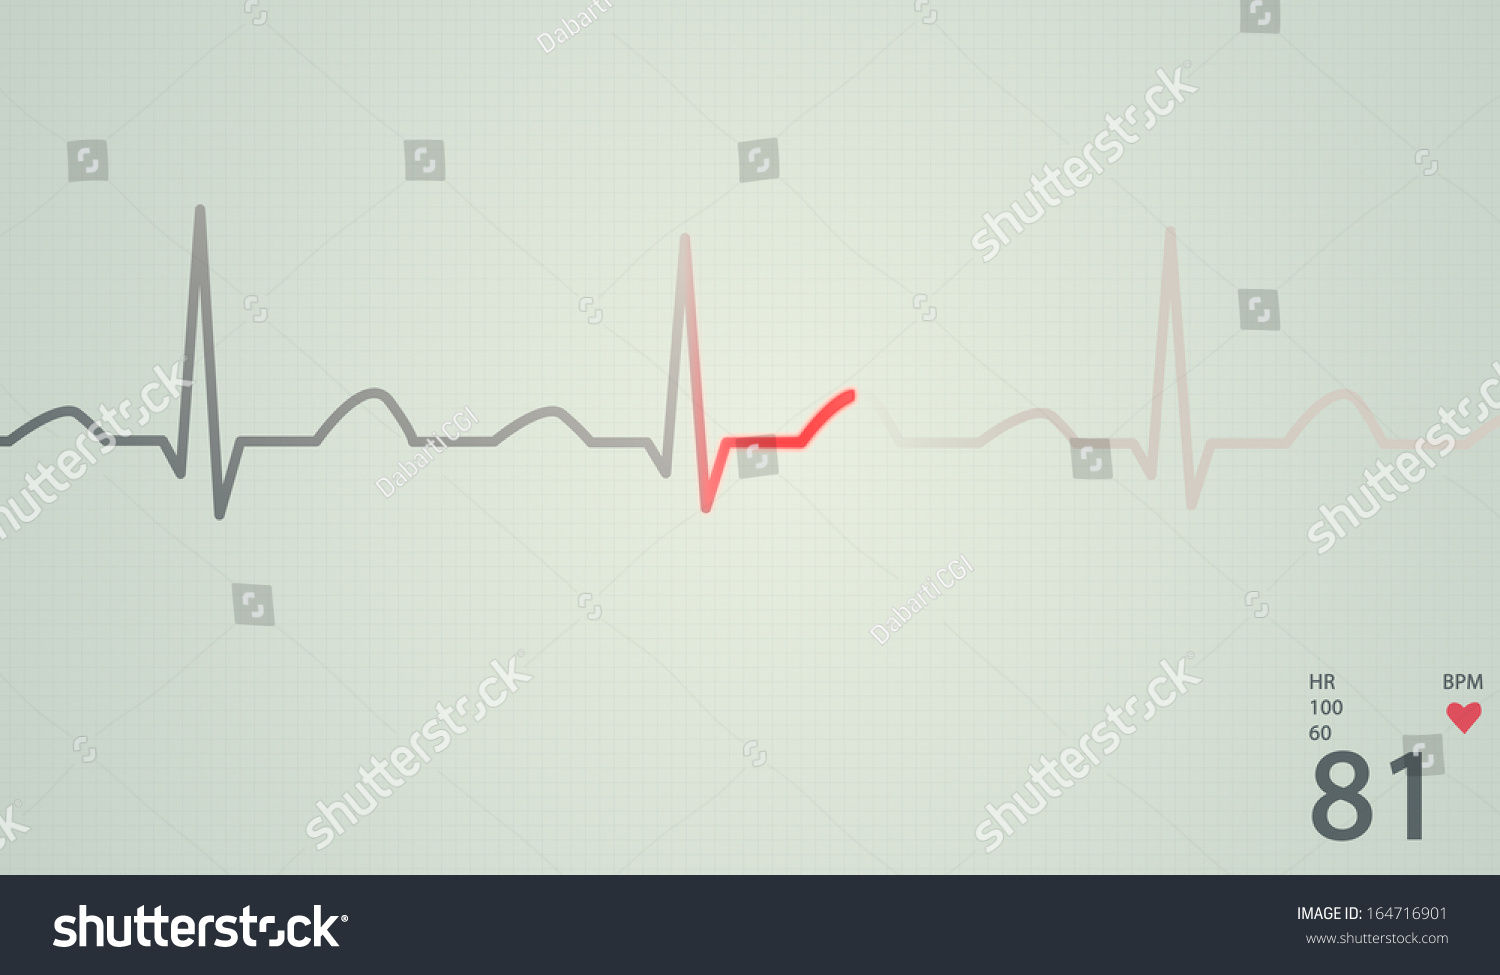 Schematic Diagram Normal Sinus Rhythm Human Stock Illustration Ecg Circuit Of For A Heart As Seen On Red